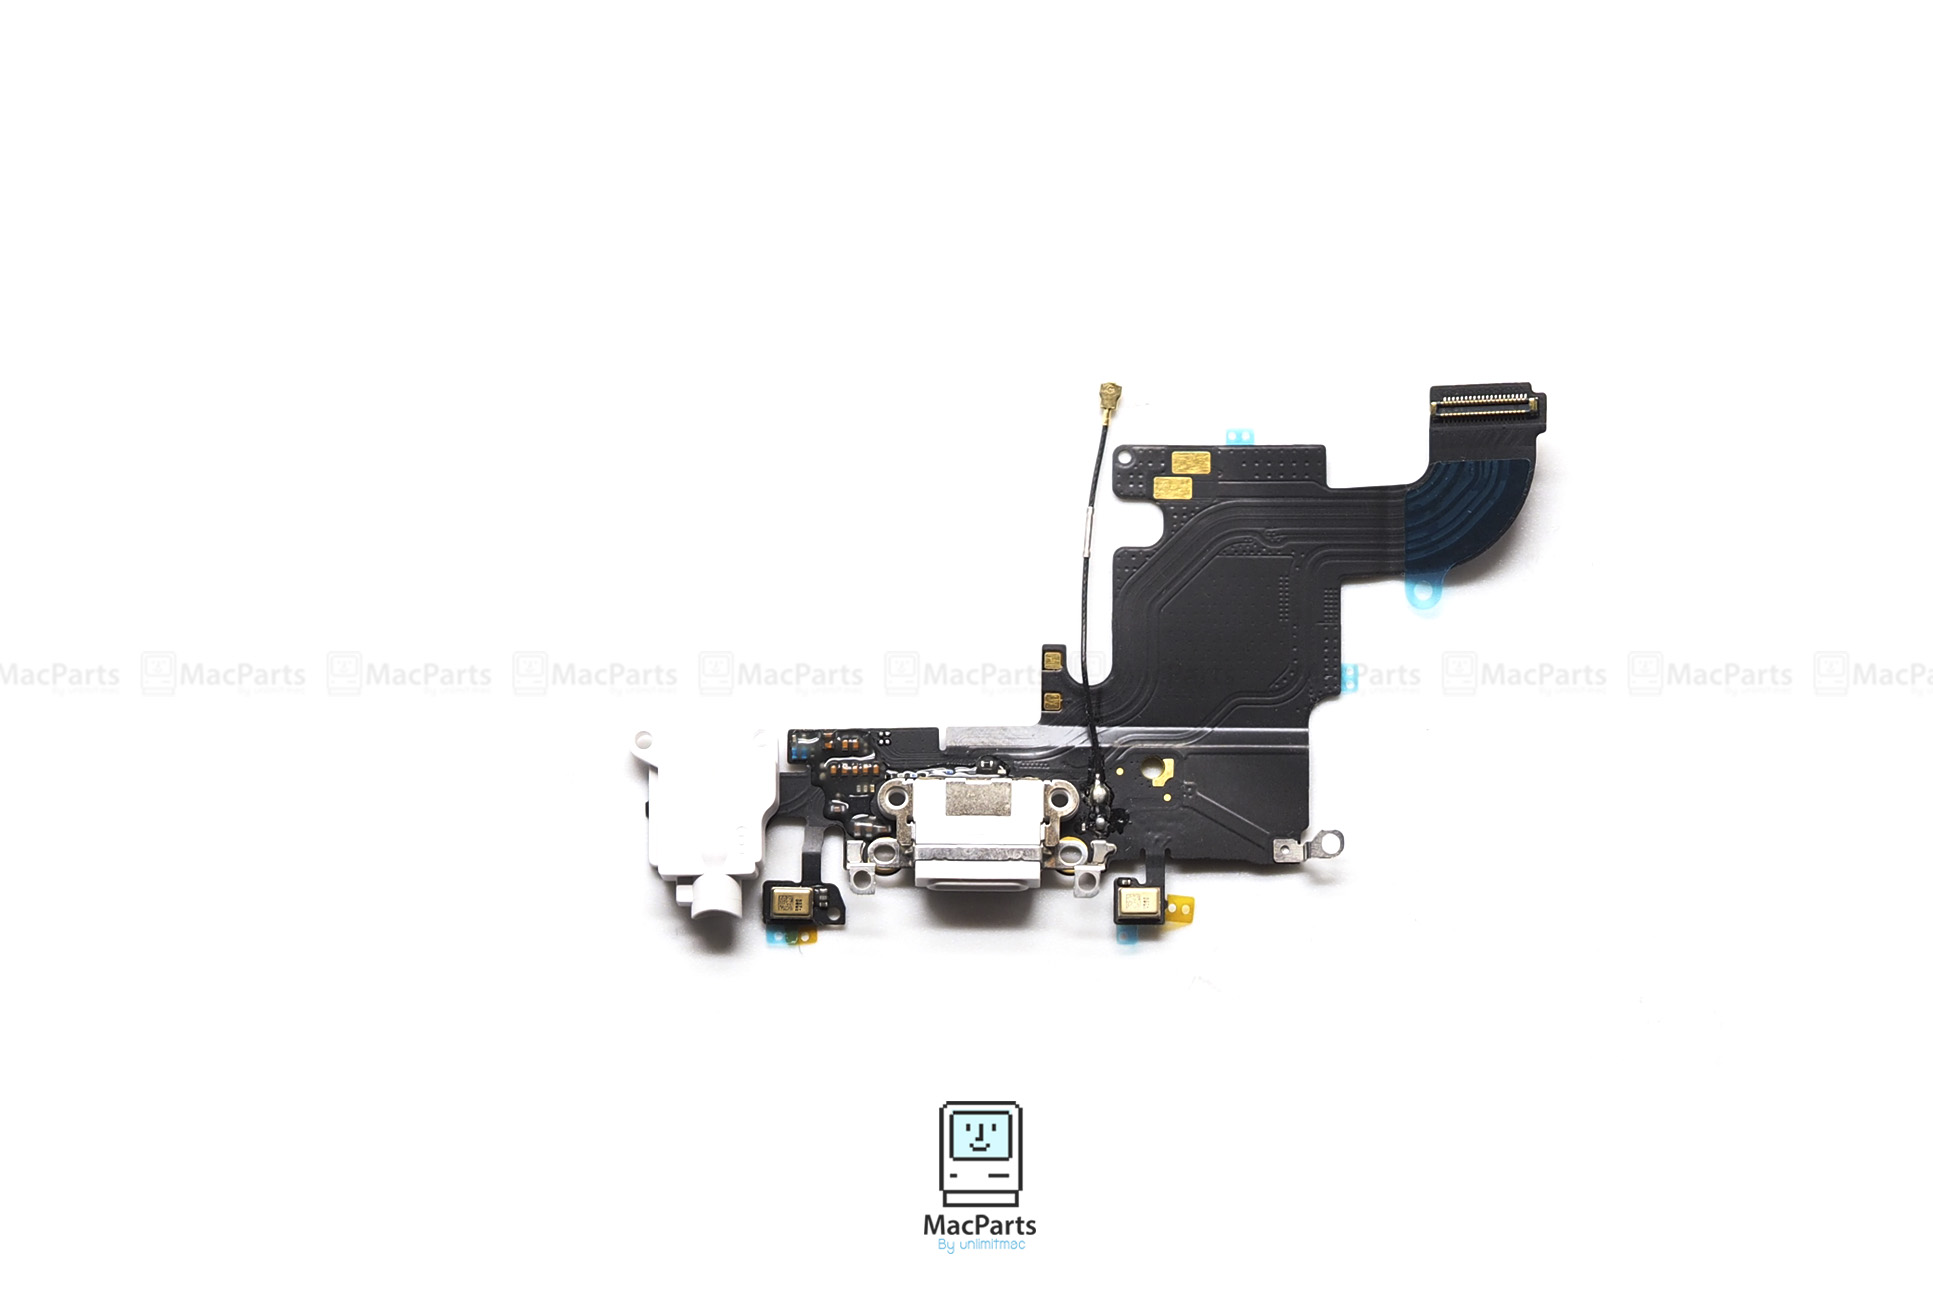 iPhone 6s Lightning Connector and Headphone Jack Gray , ชุดหูฟังไอโฟน 6S เทา